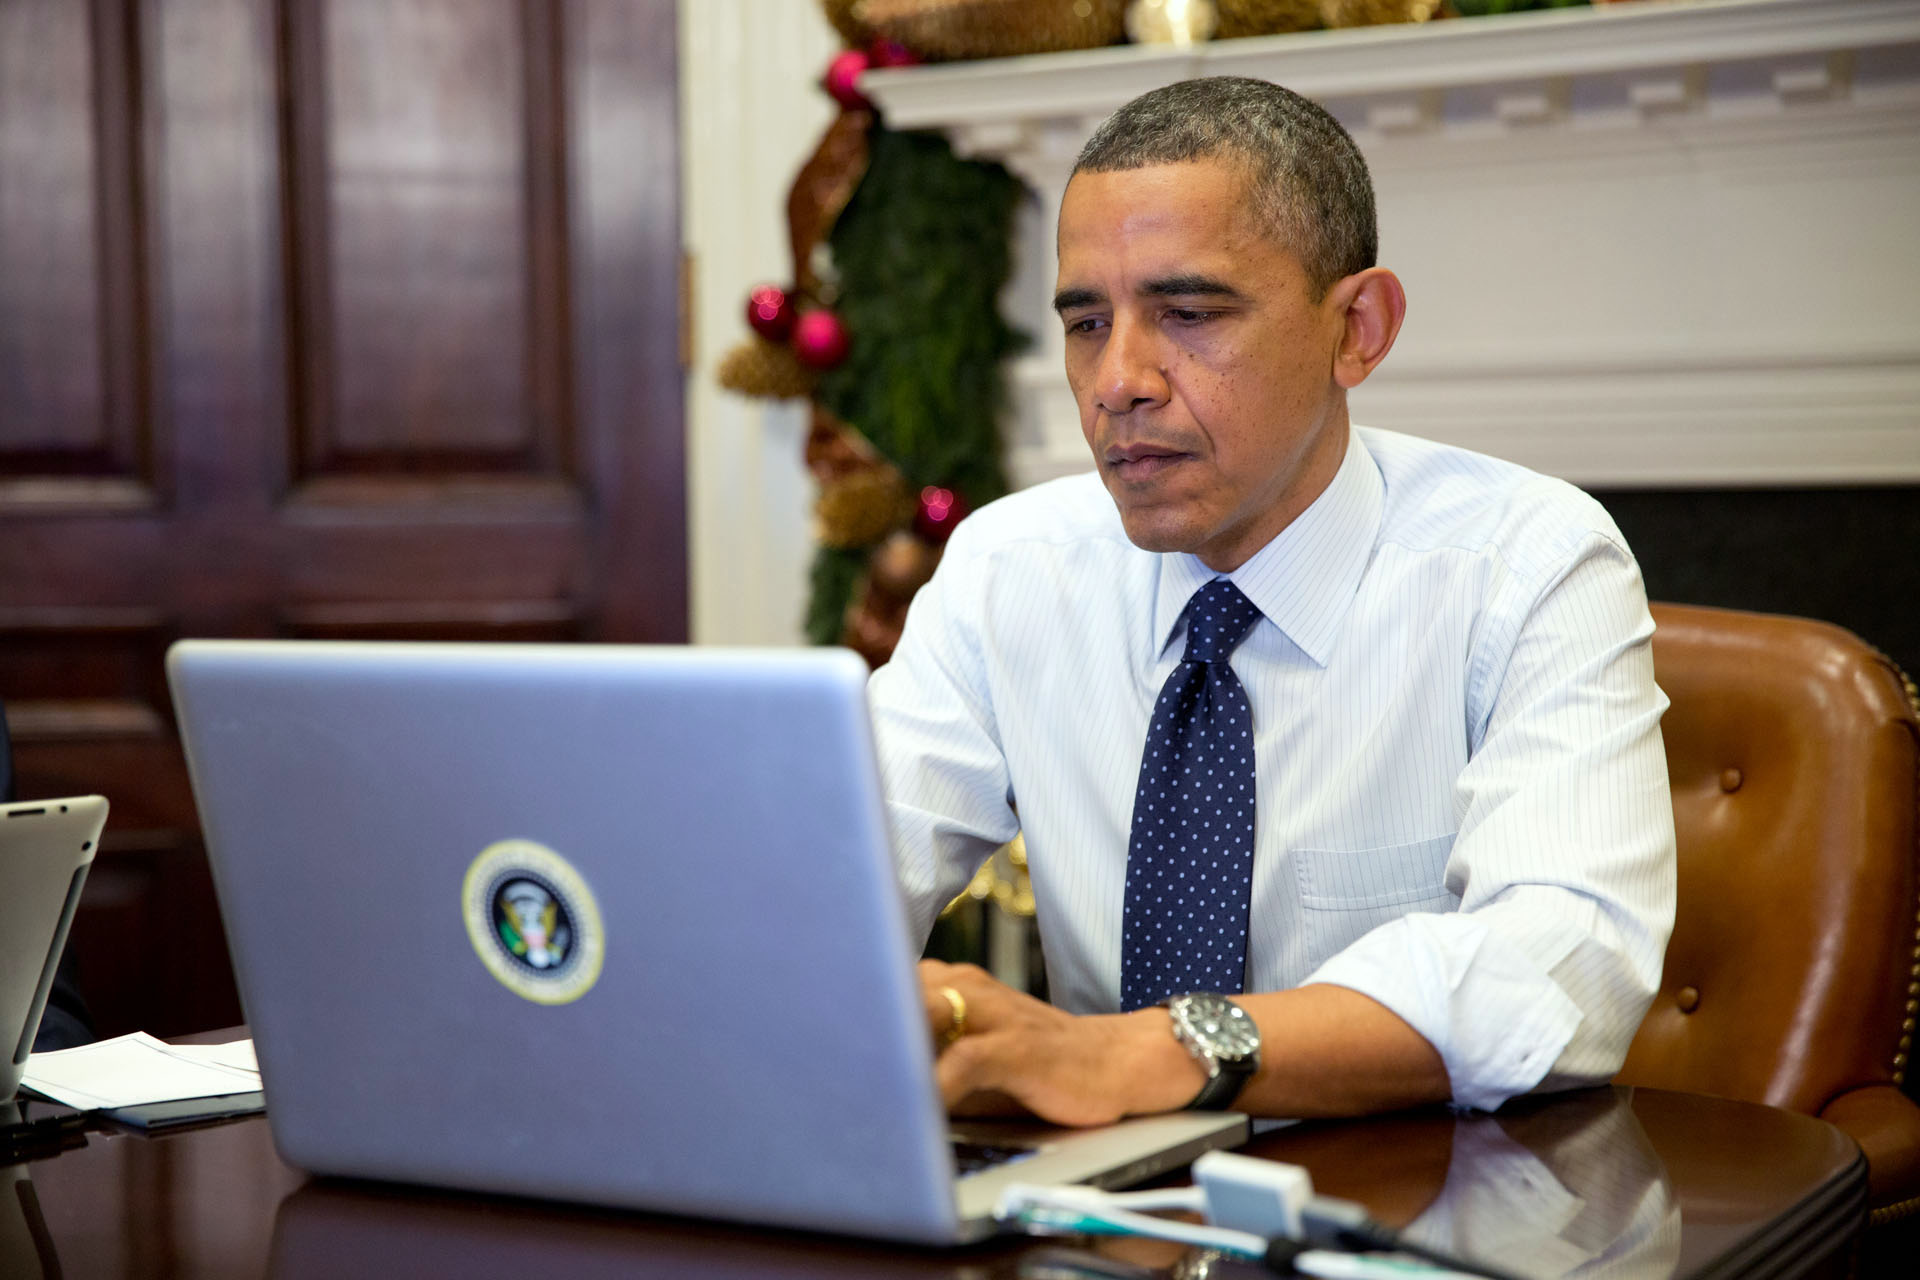 President Obama participates in a live Twitter #My2k chat, Dec. 3, 2012.